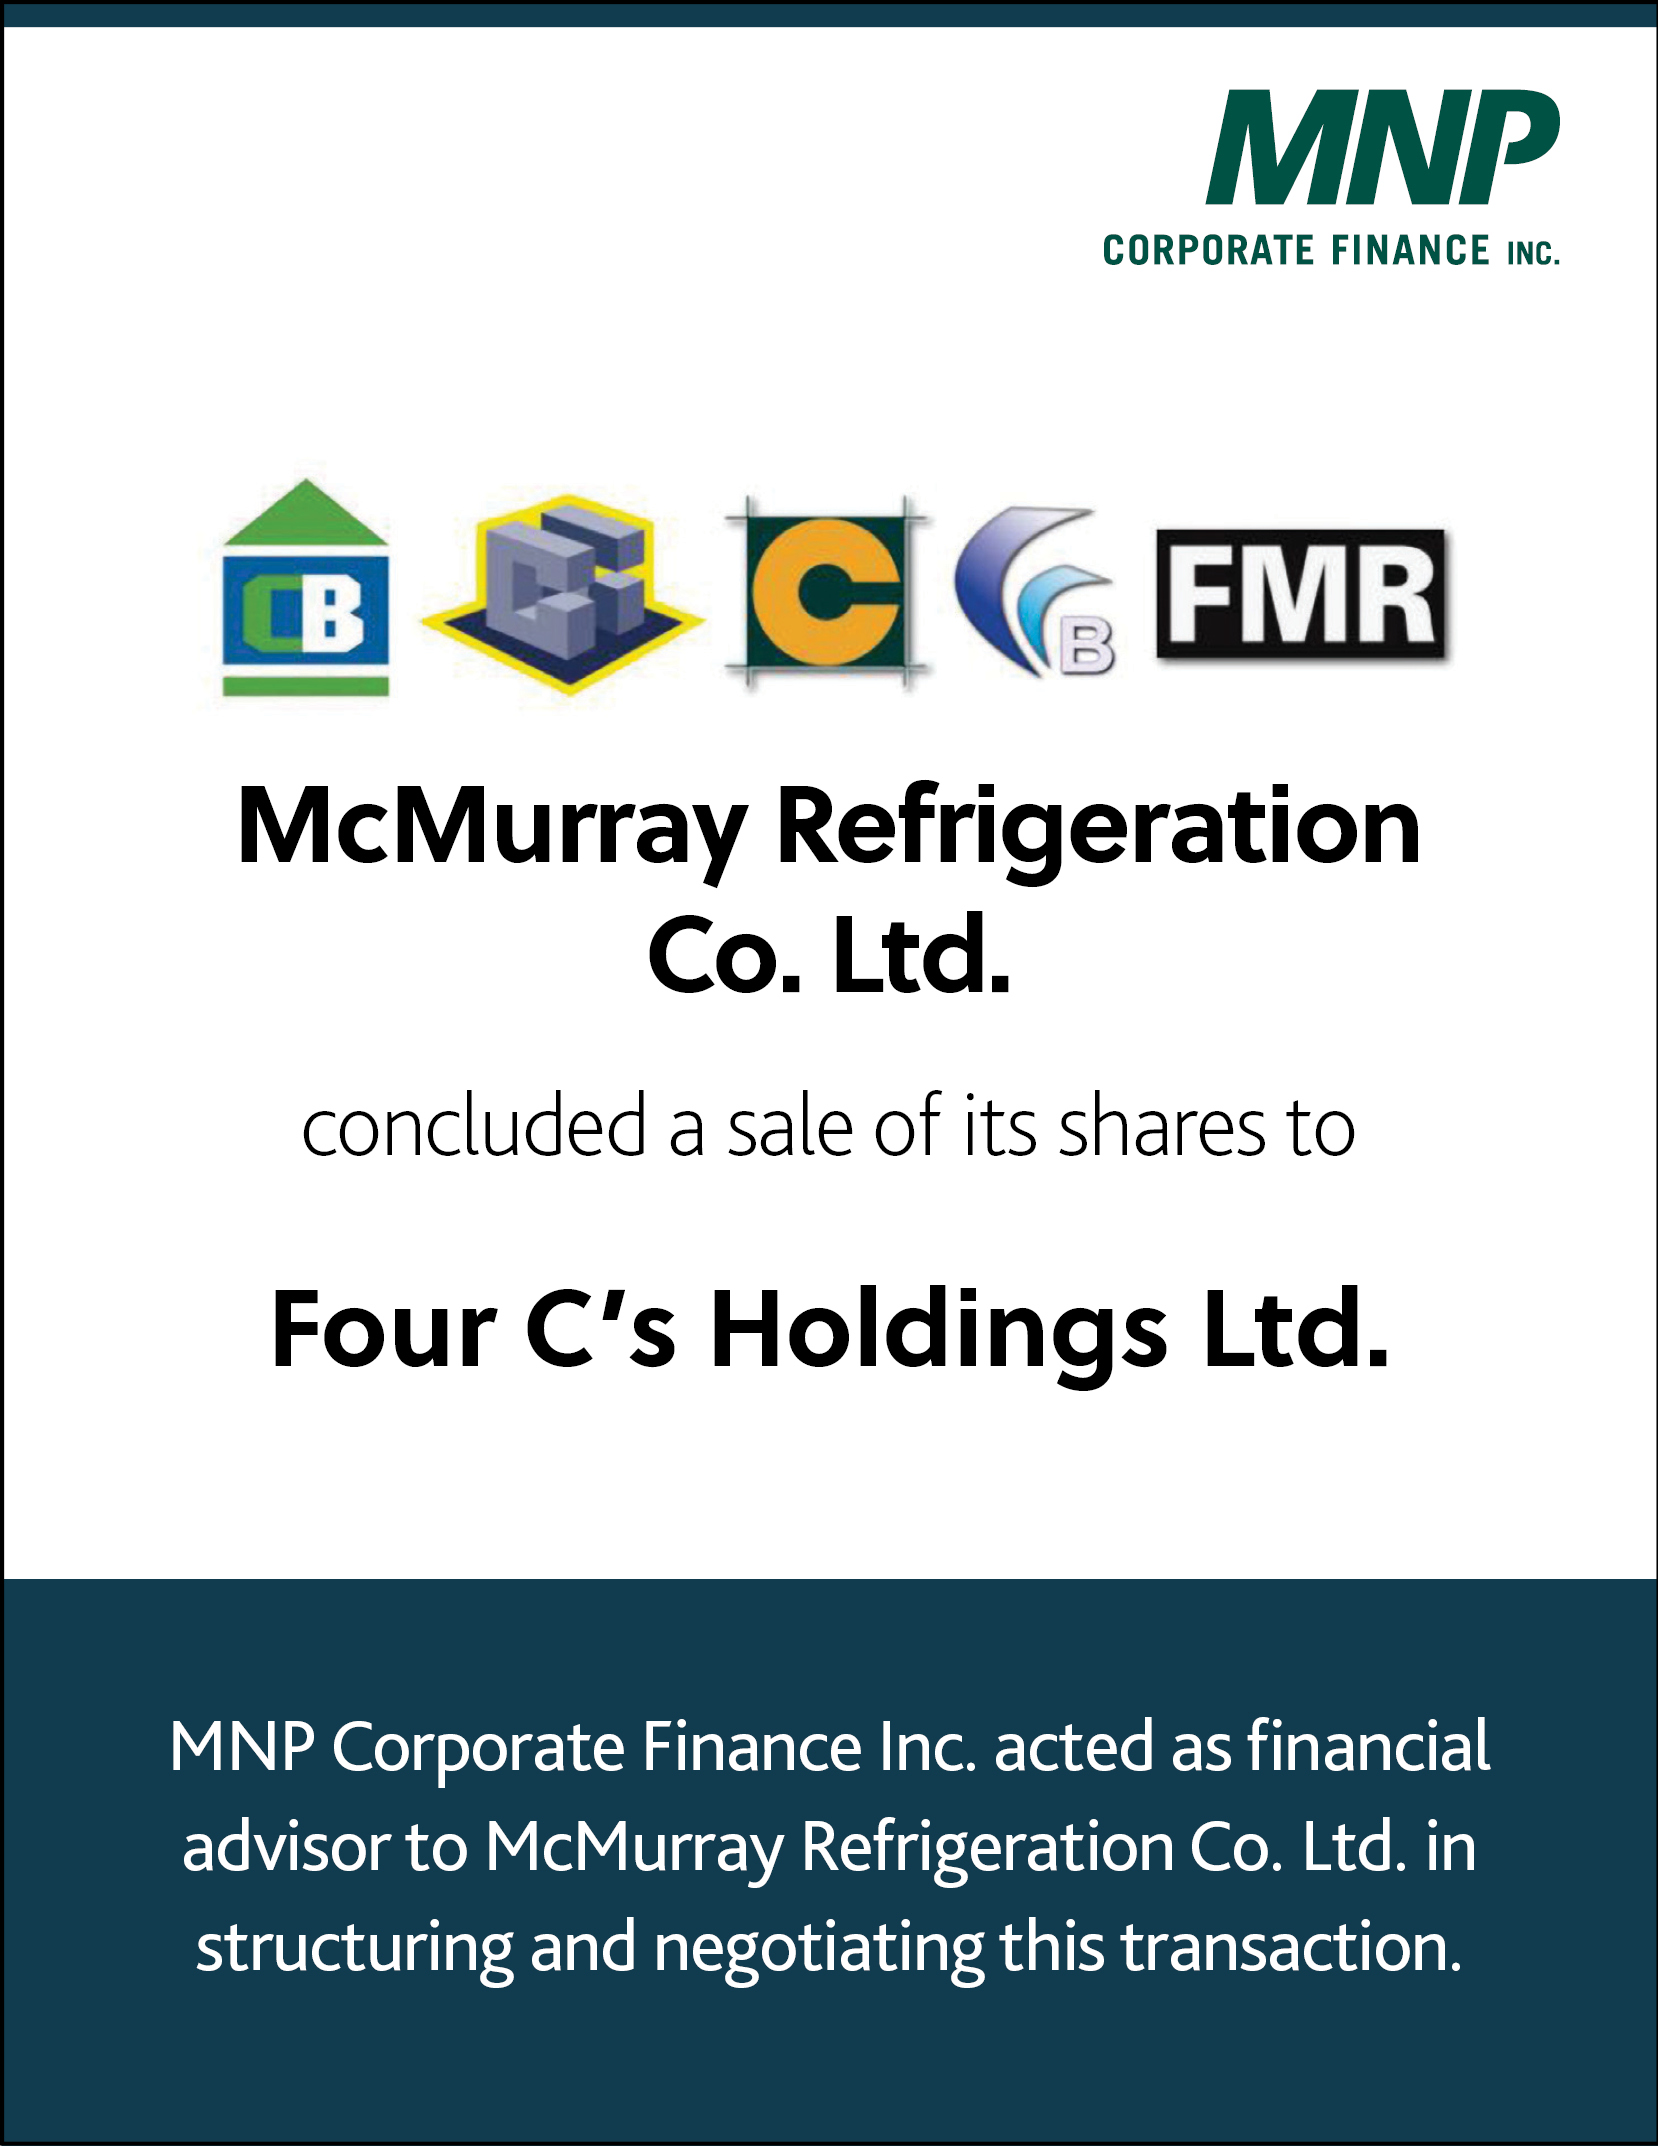 McMurray Refrigeration Co. Ltd. concluded a sale of its shares to Four C's Holdings Ltd.